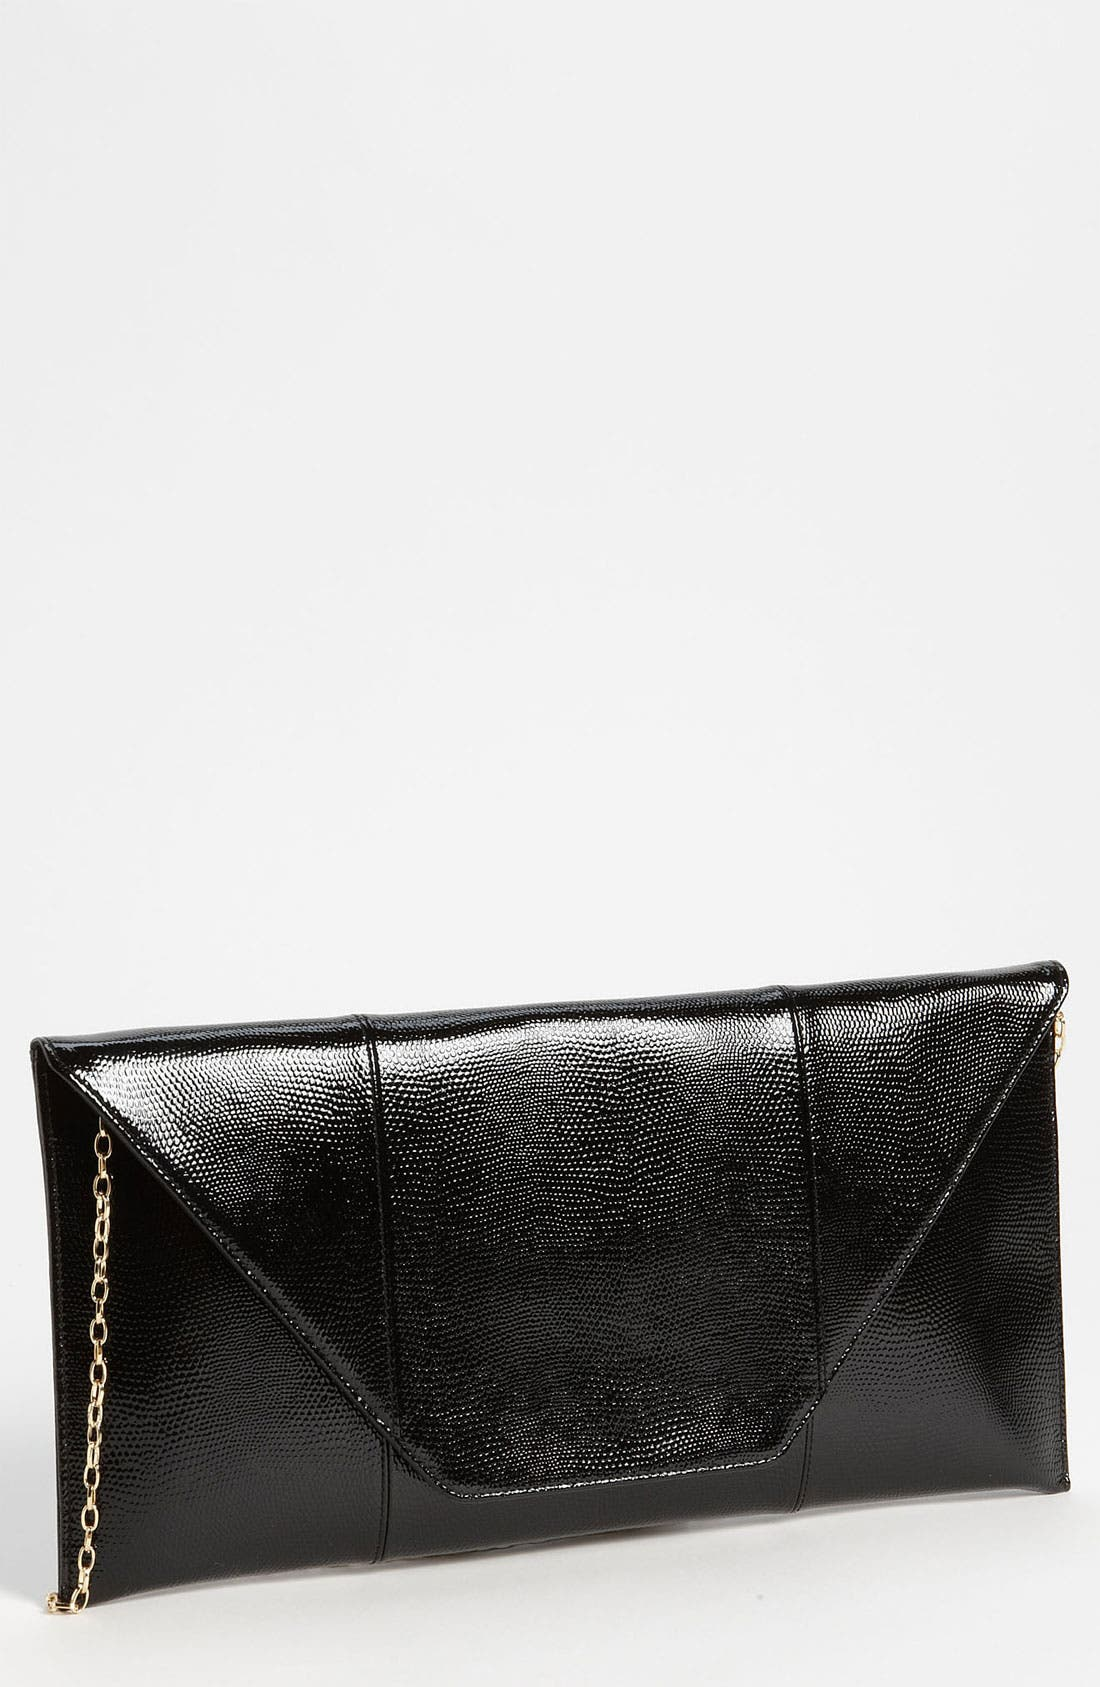 Main Image - Halogen Lizard Embossed Patent Leather Flap Clutch